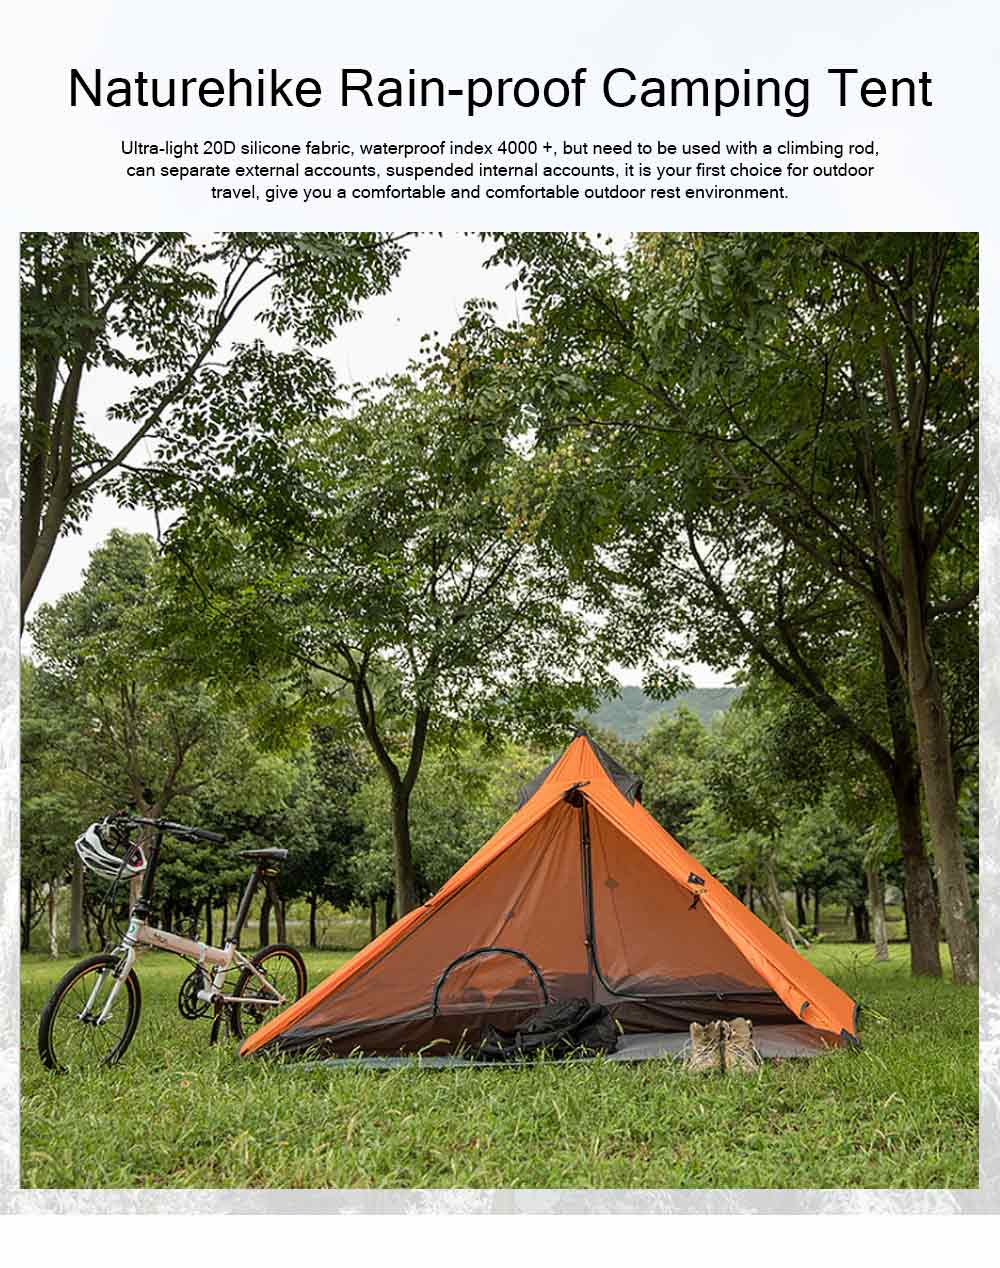 Naturehike Rain-proof Camping Tent Ultra-Light Outdoor Double-Layer Silica Single Tower Sky Tent 0